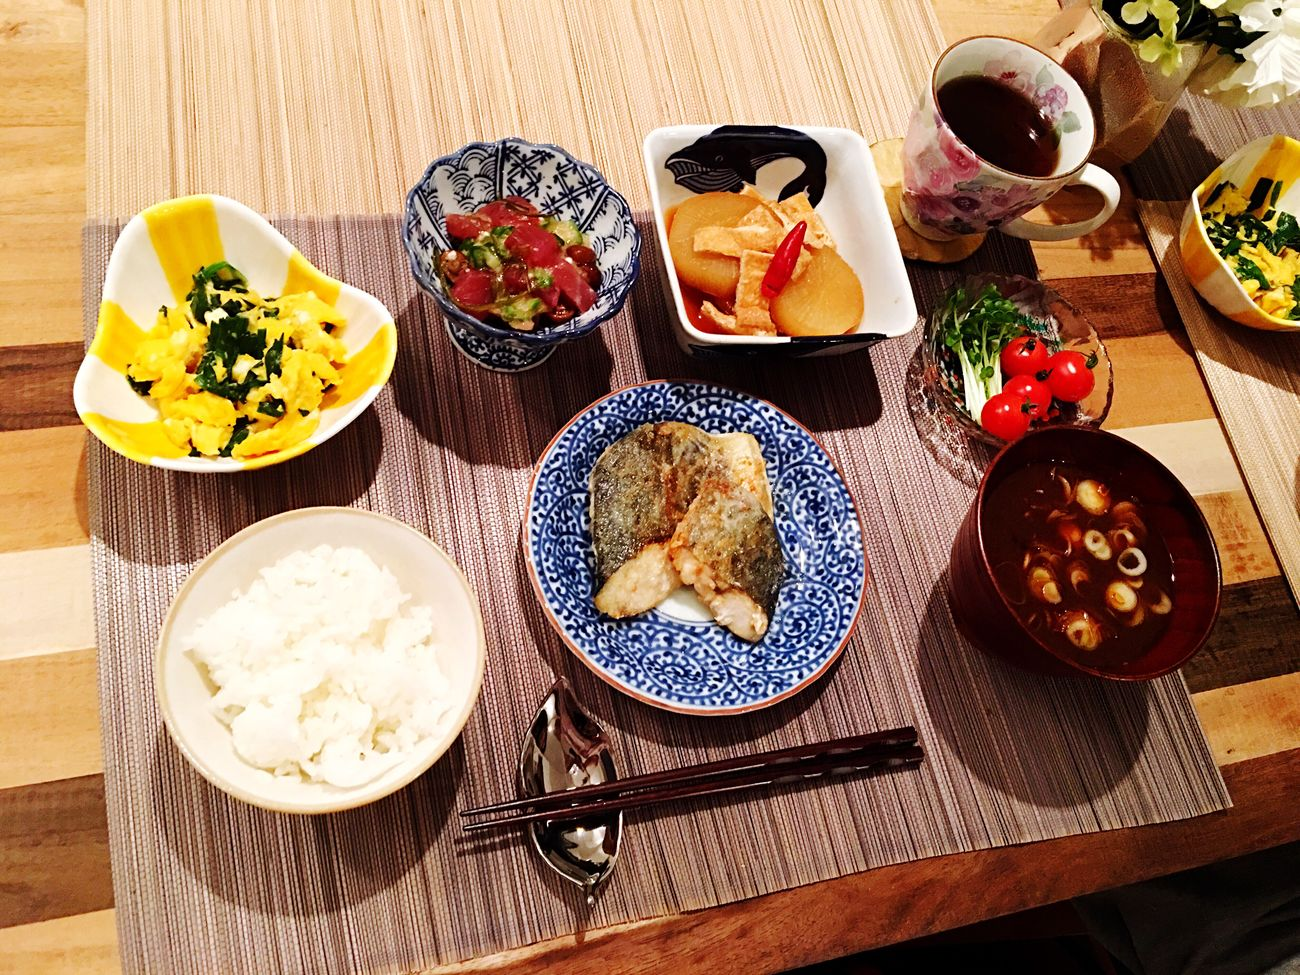 Today's Dinner 鰆のバター焼き ニラ玉 大根と油揚げの煮物 なめこと豆腐の赤だし ととぶつ屋の ねばとろまぐろ Healthy Eating Ready-to-eat Japanese Food SoDelicious Cooking Food Porn Foodporn Dinner Time Spanish Mackerel Butter Nira Egg Radish Aburaage Nameko Tofu Tuna